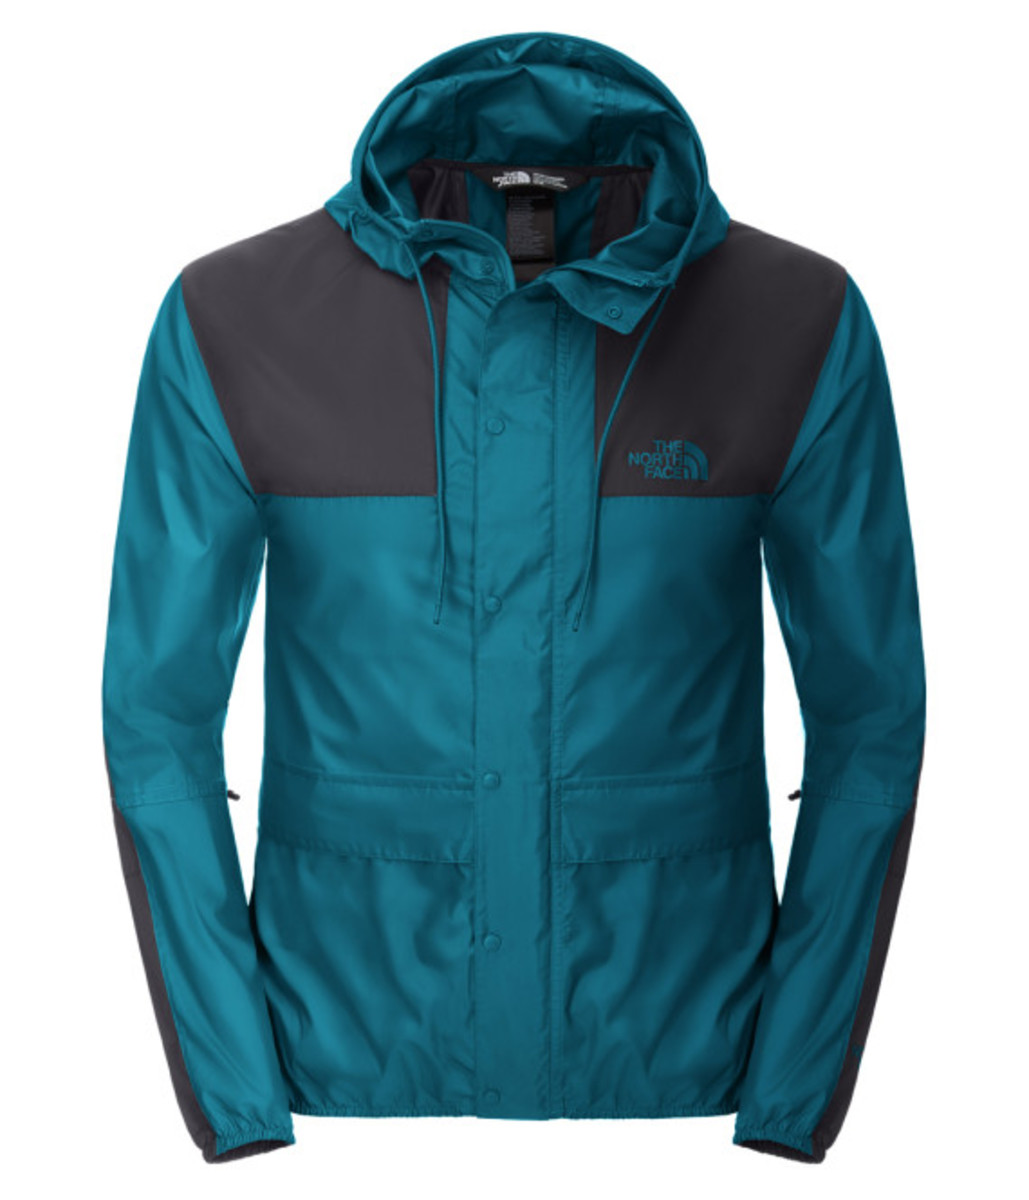 the-north-face-mountain-jacket-15